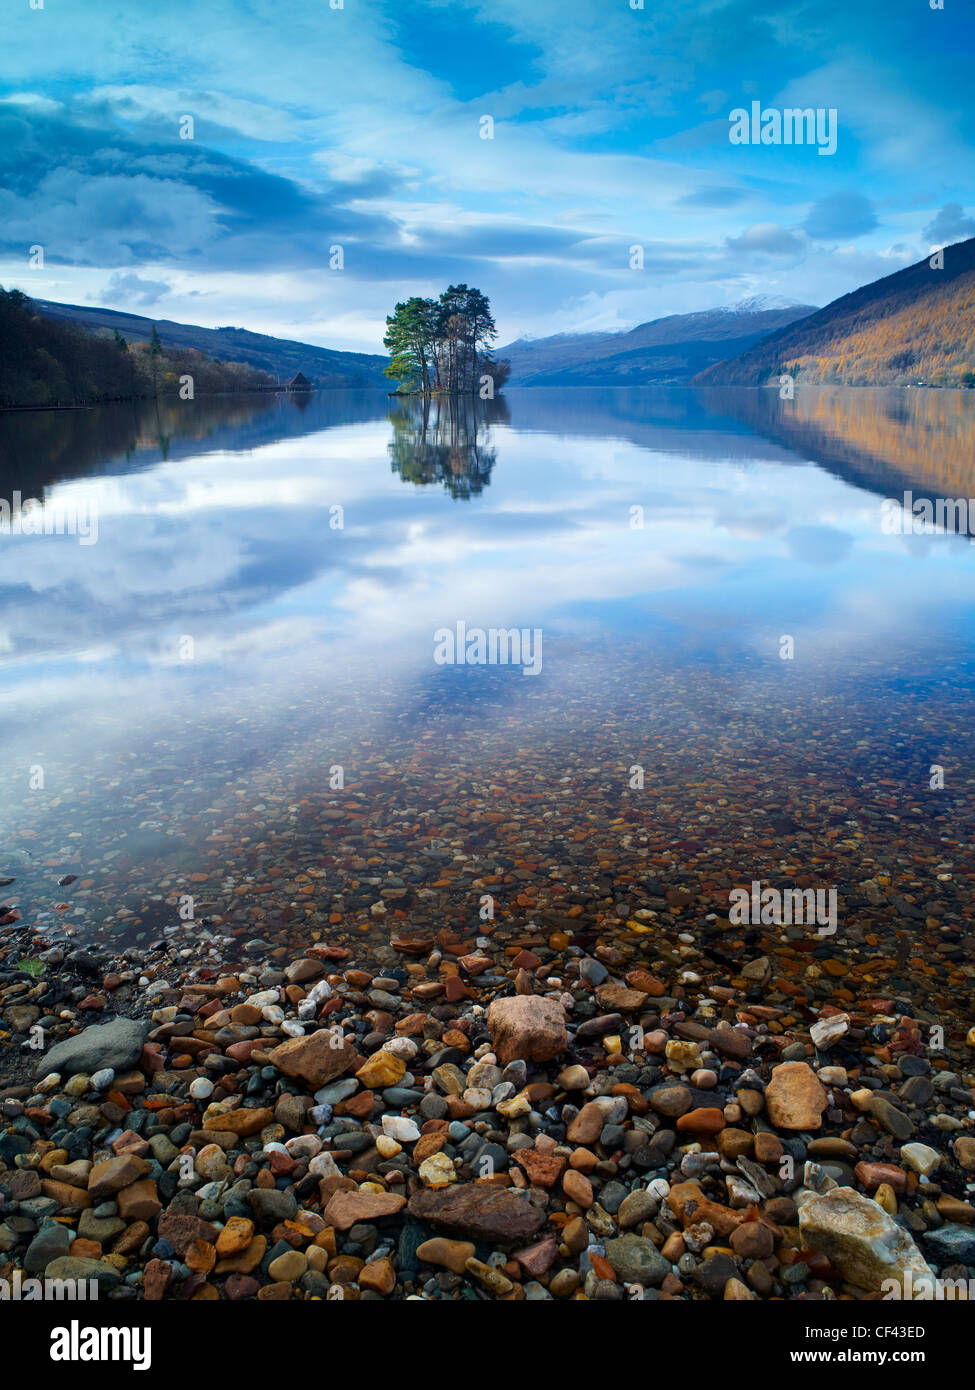 The sky and surrounding hillside reflected in the still waters of Loch Tay on a winter morning. - Stock Image